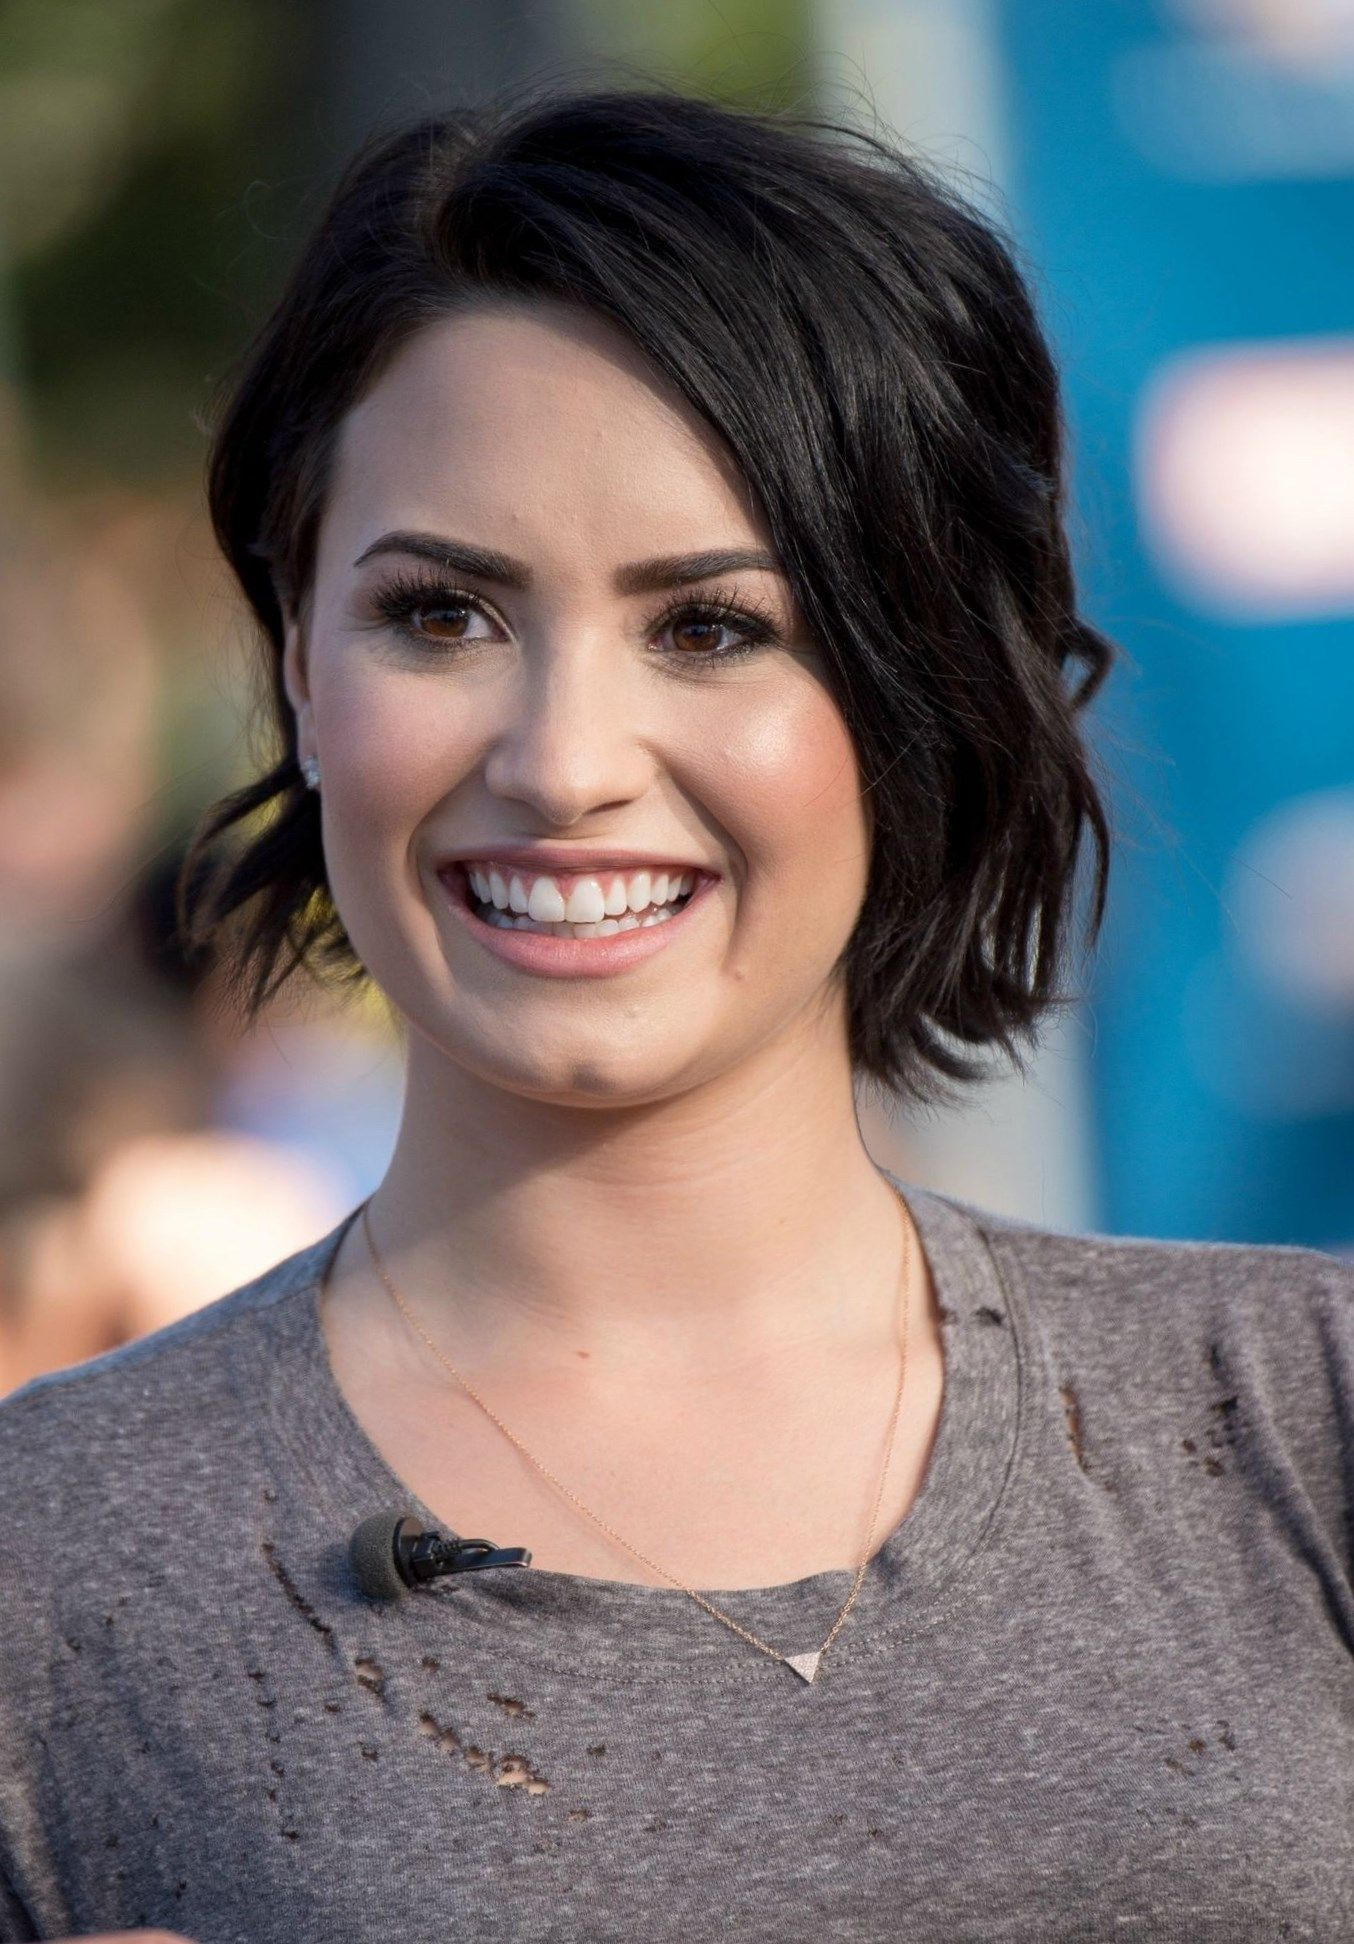 Demi lovato new hair style - http://new-hairstyle.ru/demi ...